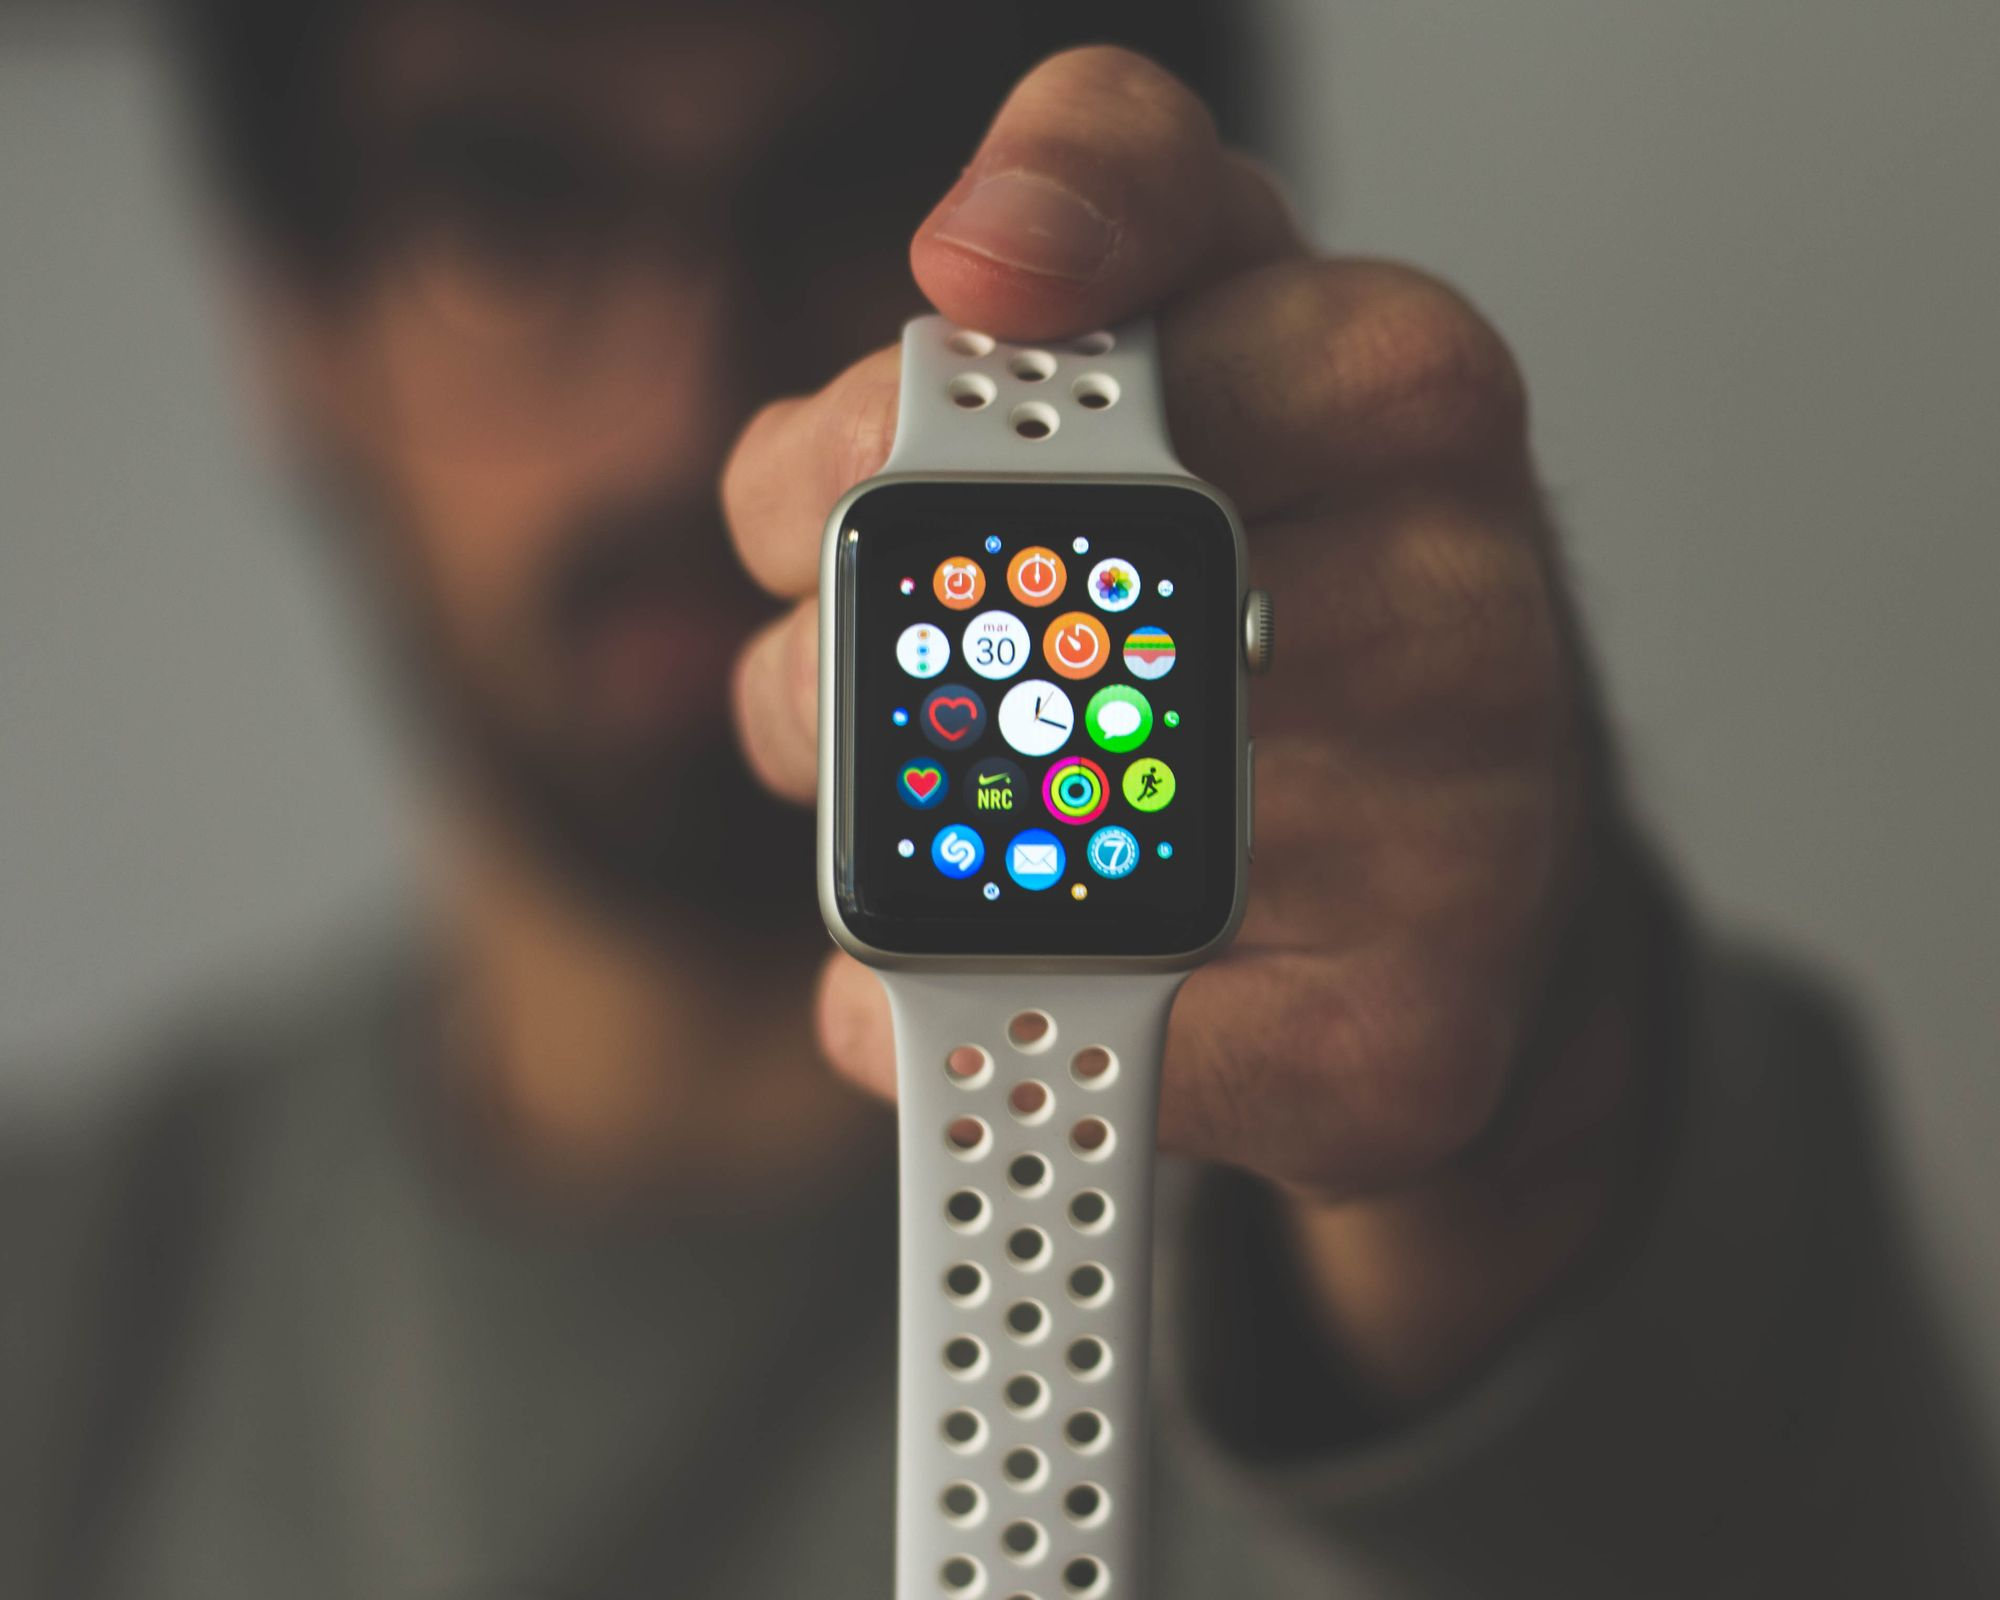 A man holding a smart watch full of different apps in front of him.